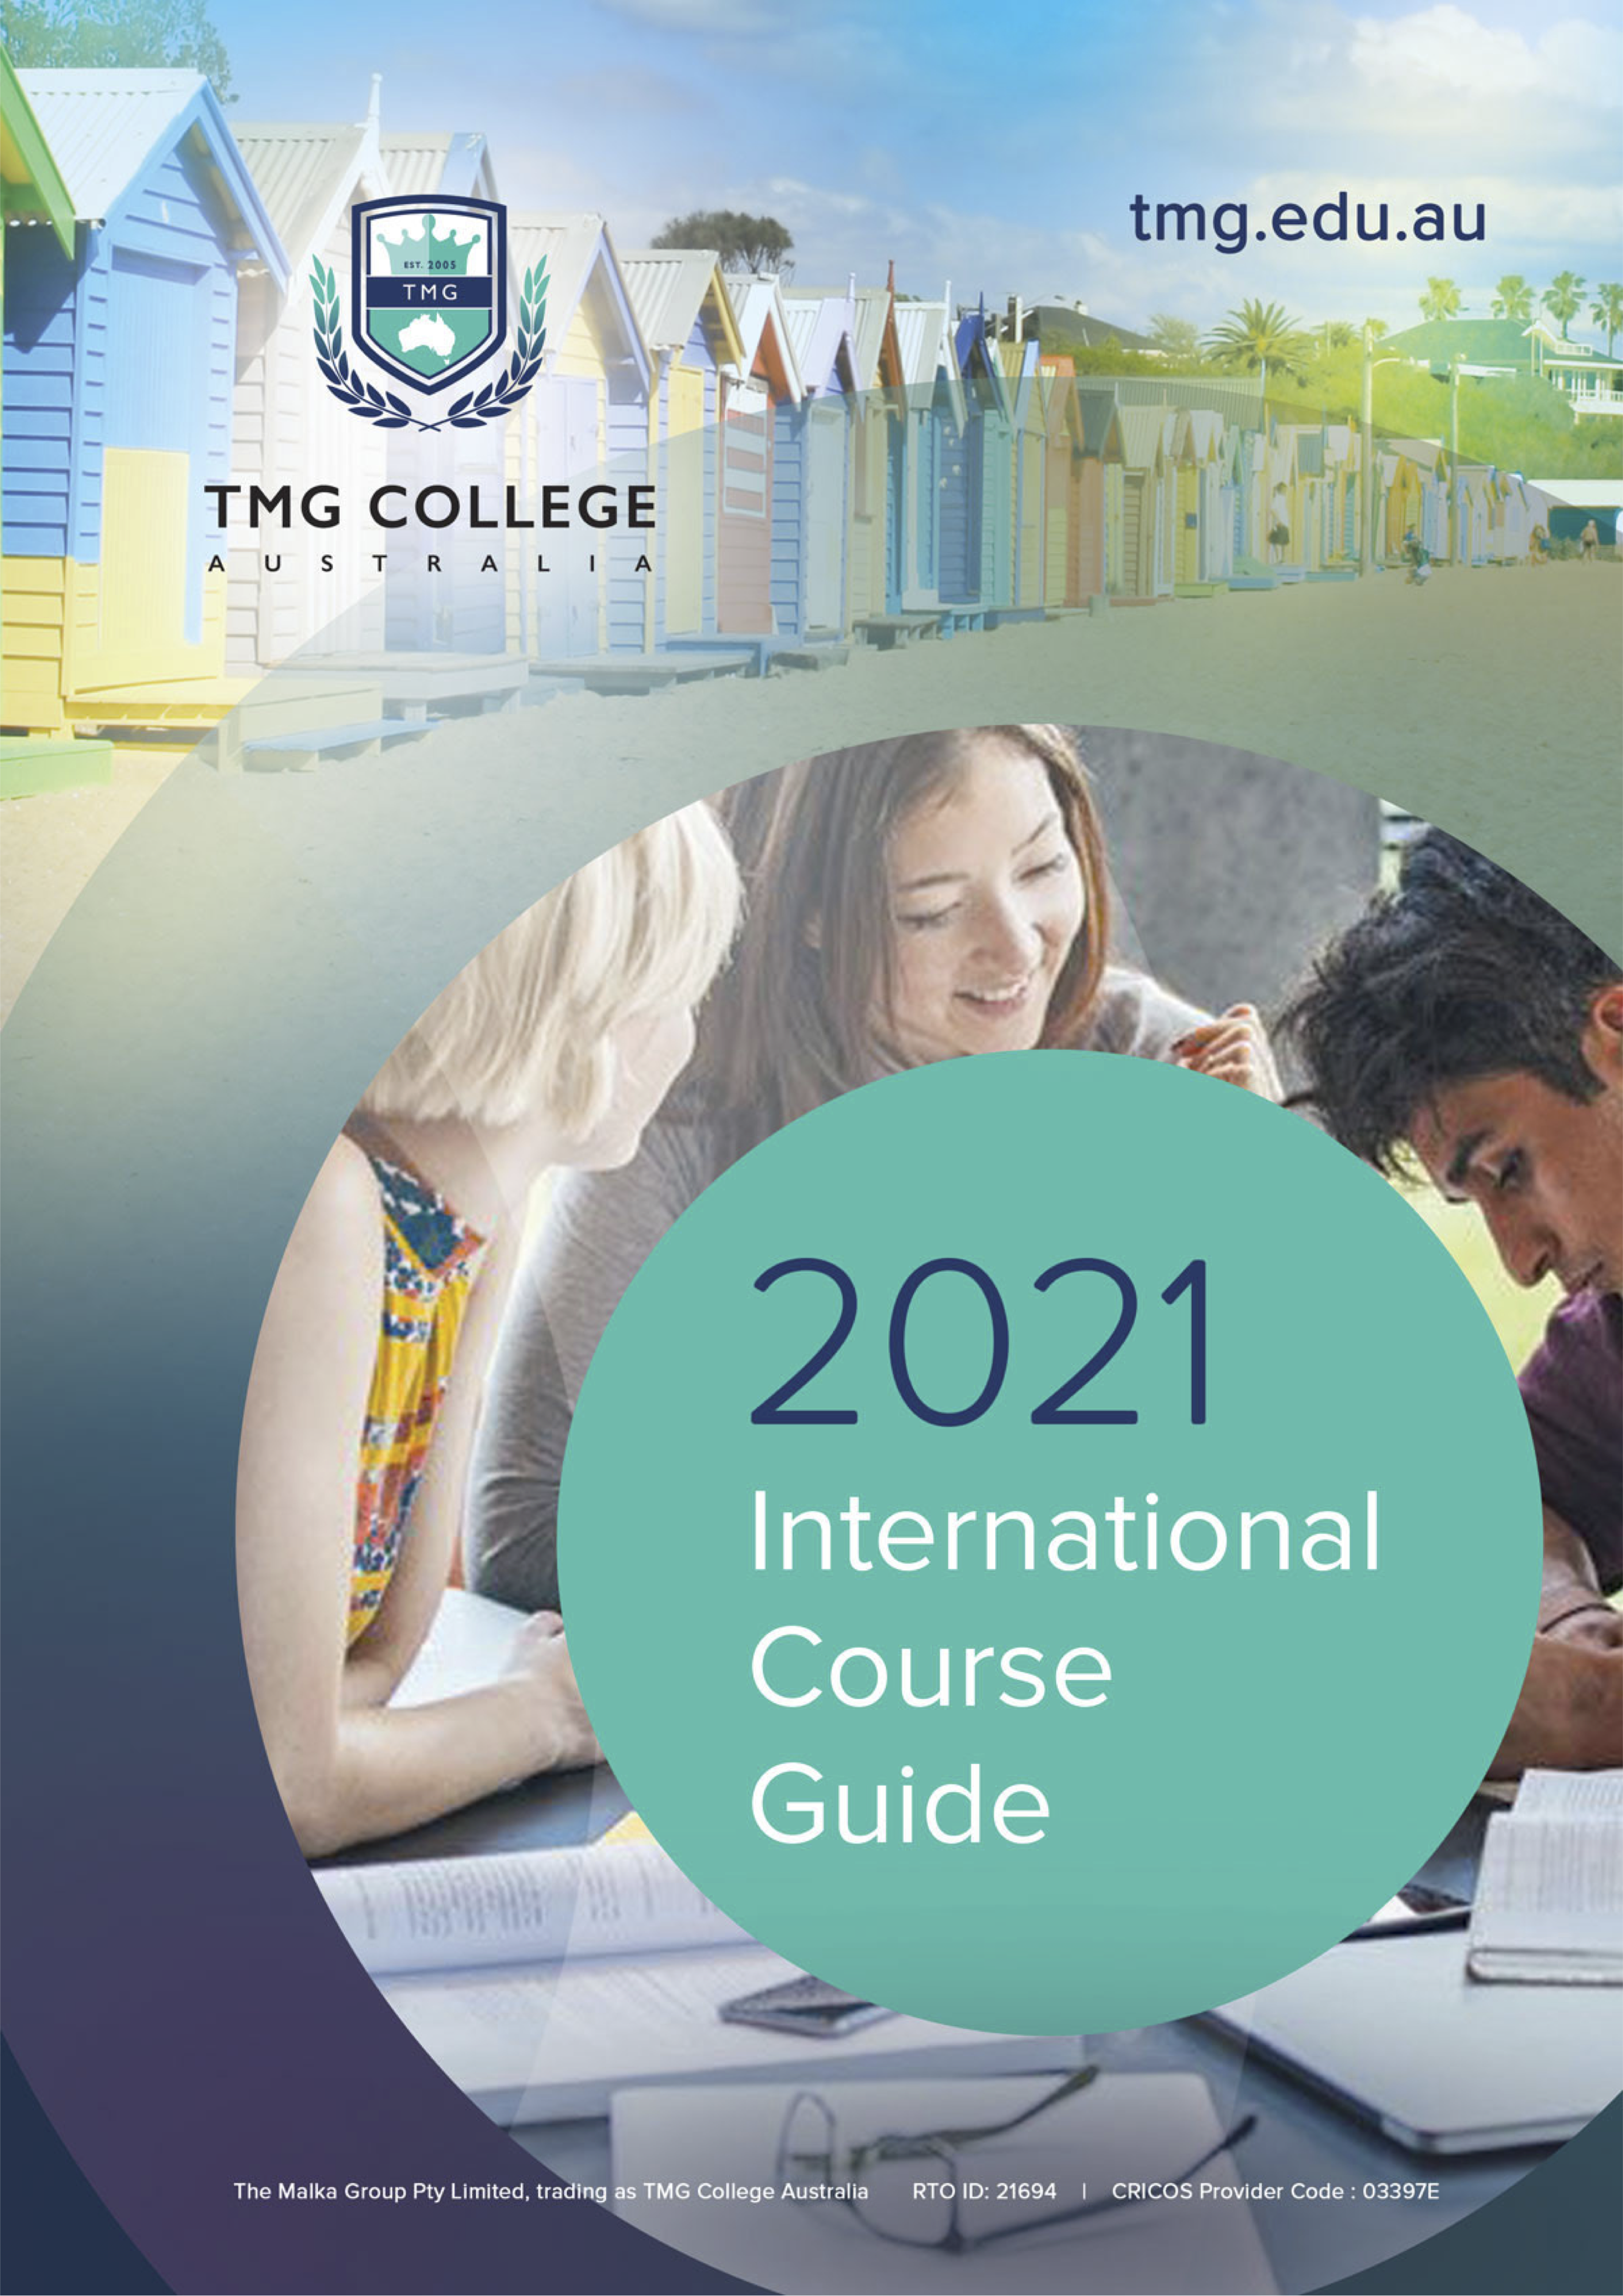 2021 International Course Guide 05022021 copy